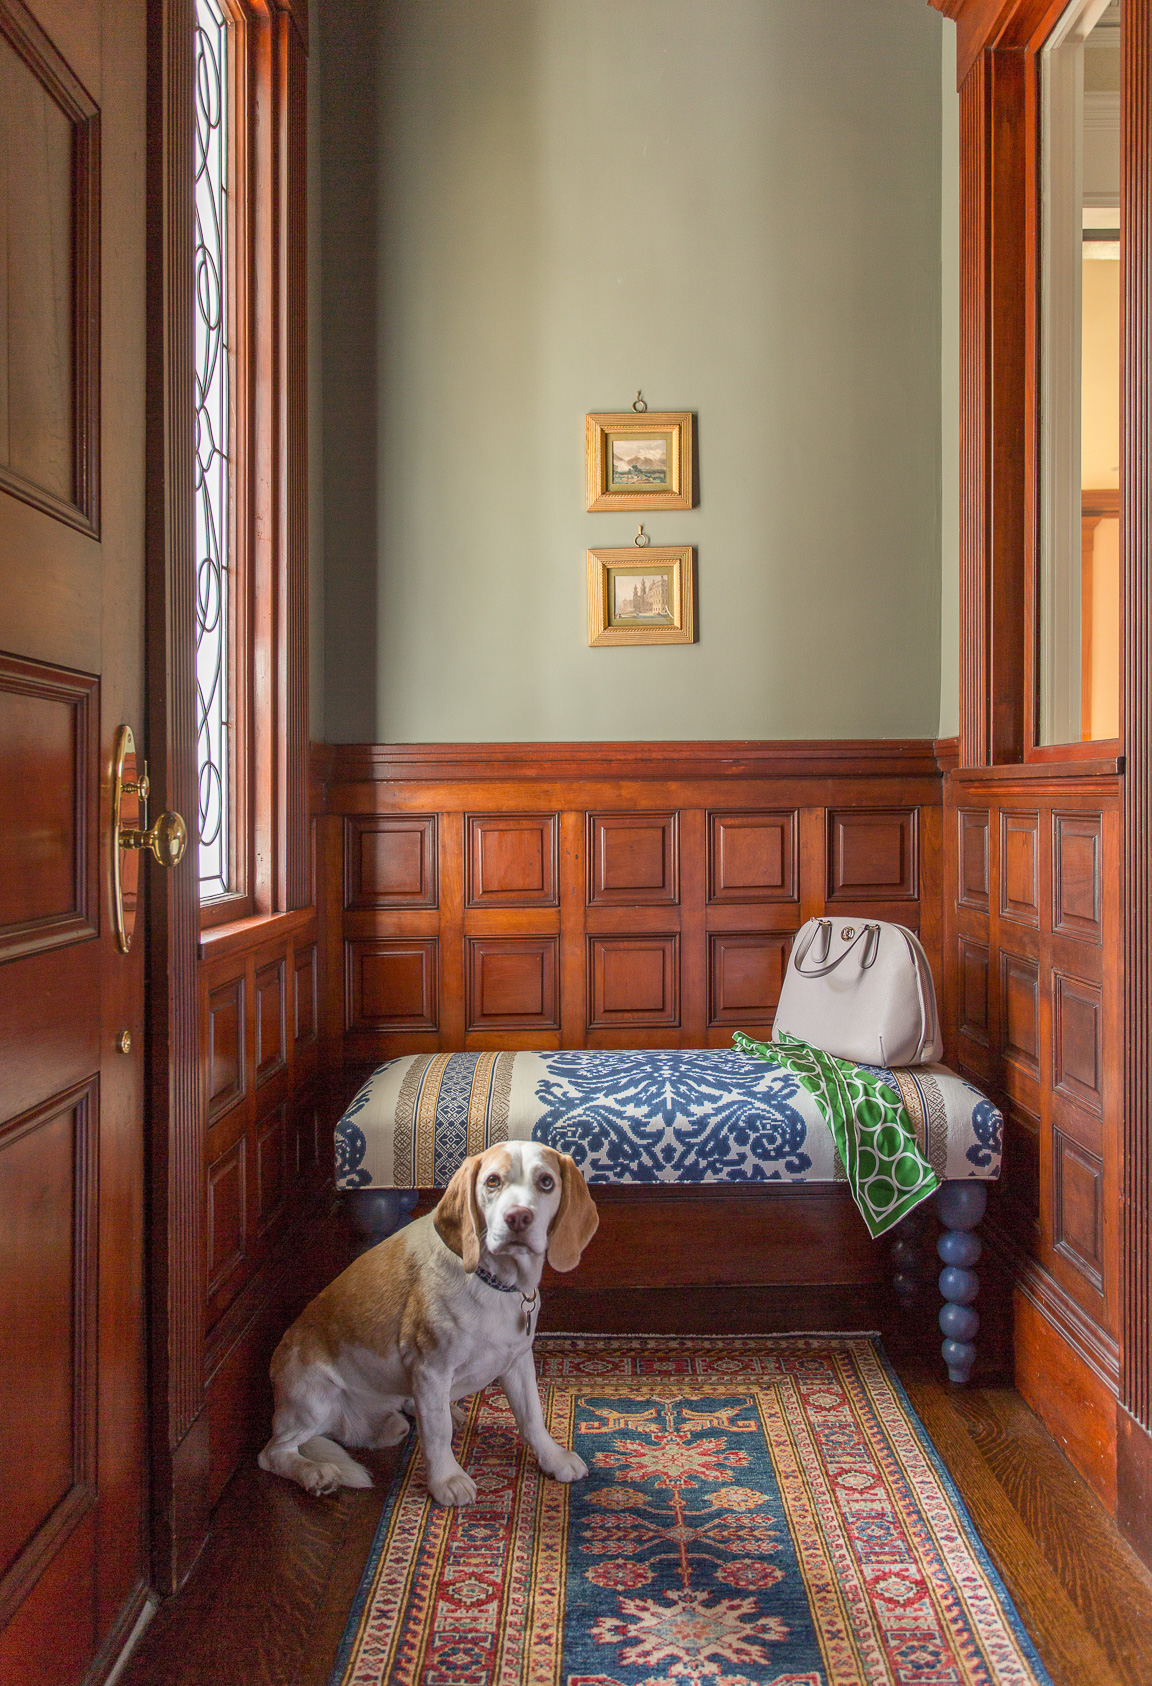 One Room Challenge 5/2015 Week 6 Reveal | Interiors for Families | Kelly Rogers Interiors